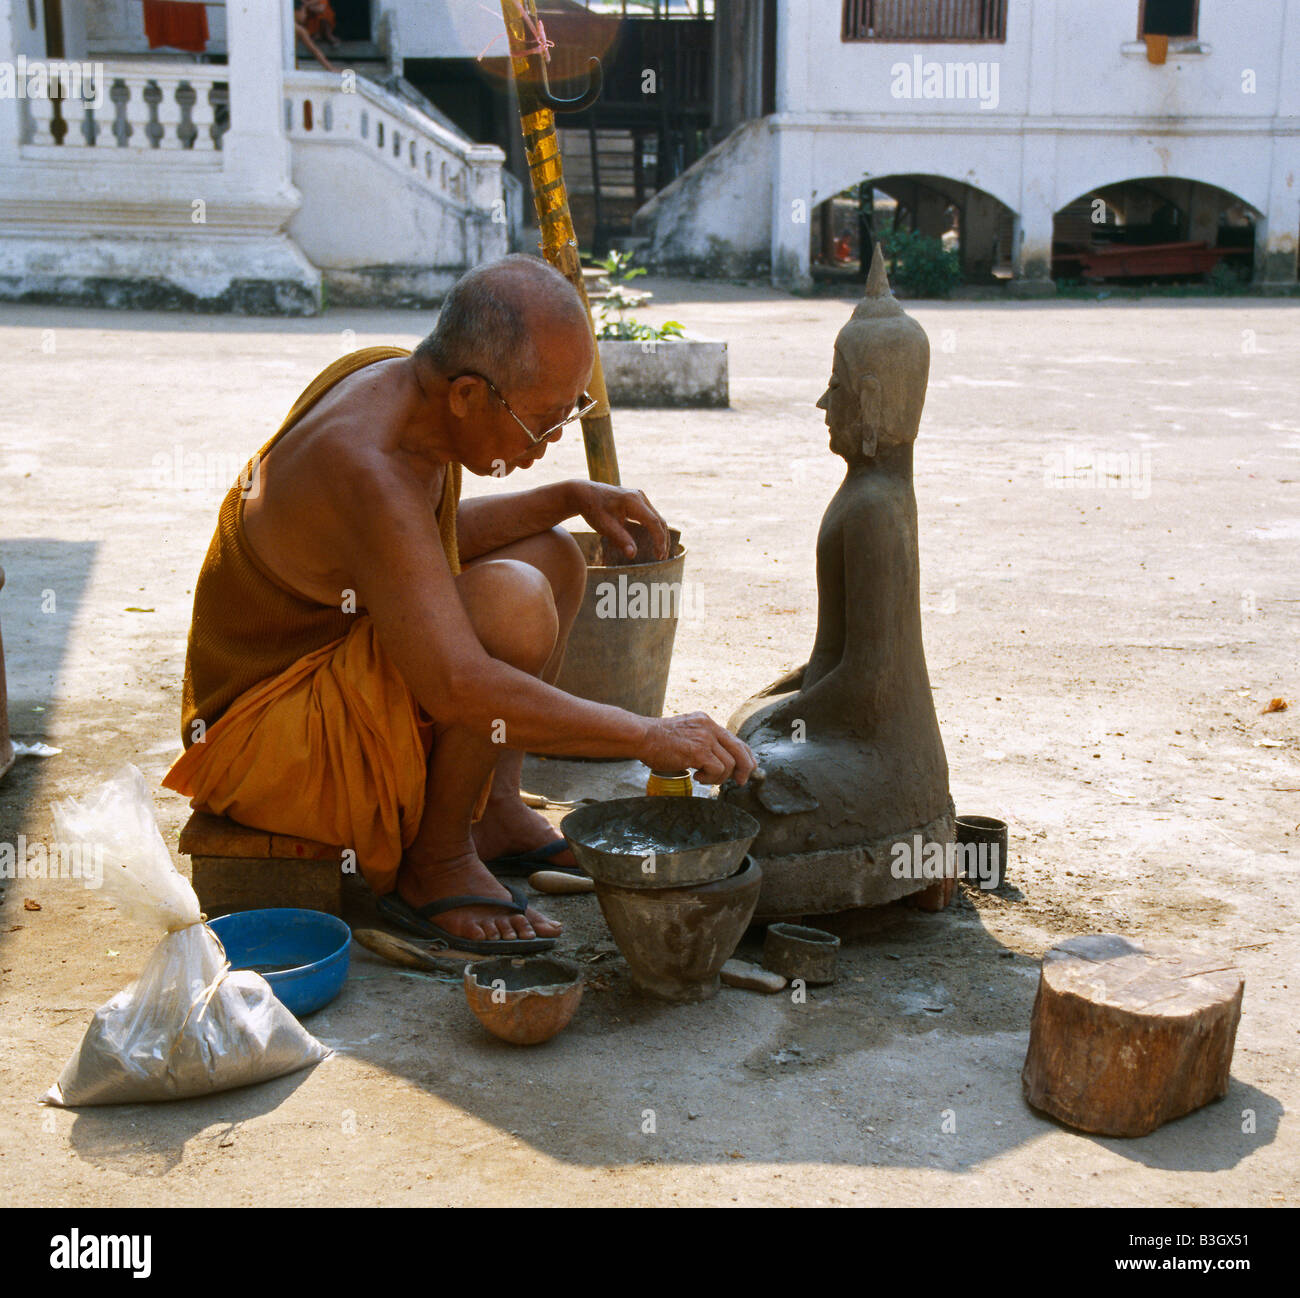 A monk is modelizing a Buddha statue out of plaster Luang Prabang Laos Stock Photo